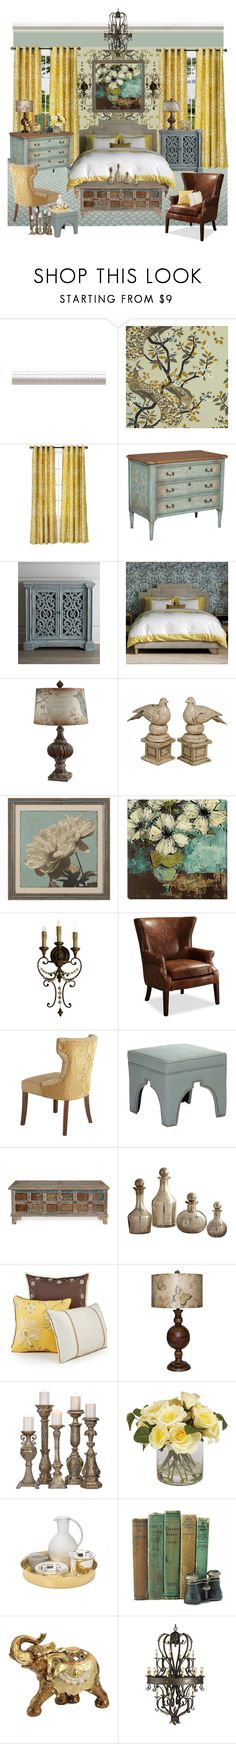 """""""Sweet Dreams"""" by rotunda ❤ liked on Polyvore featuring interior, interiors, interior design, home, home decor, interior decorating, DwellStudio, Ethan Allen, Thos. Baker and Pier 1 Imports"""